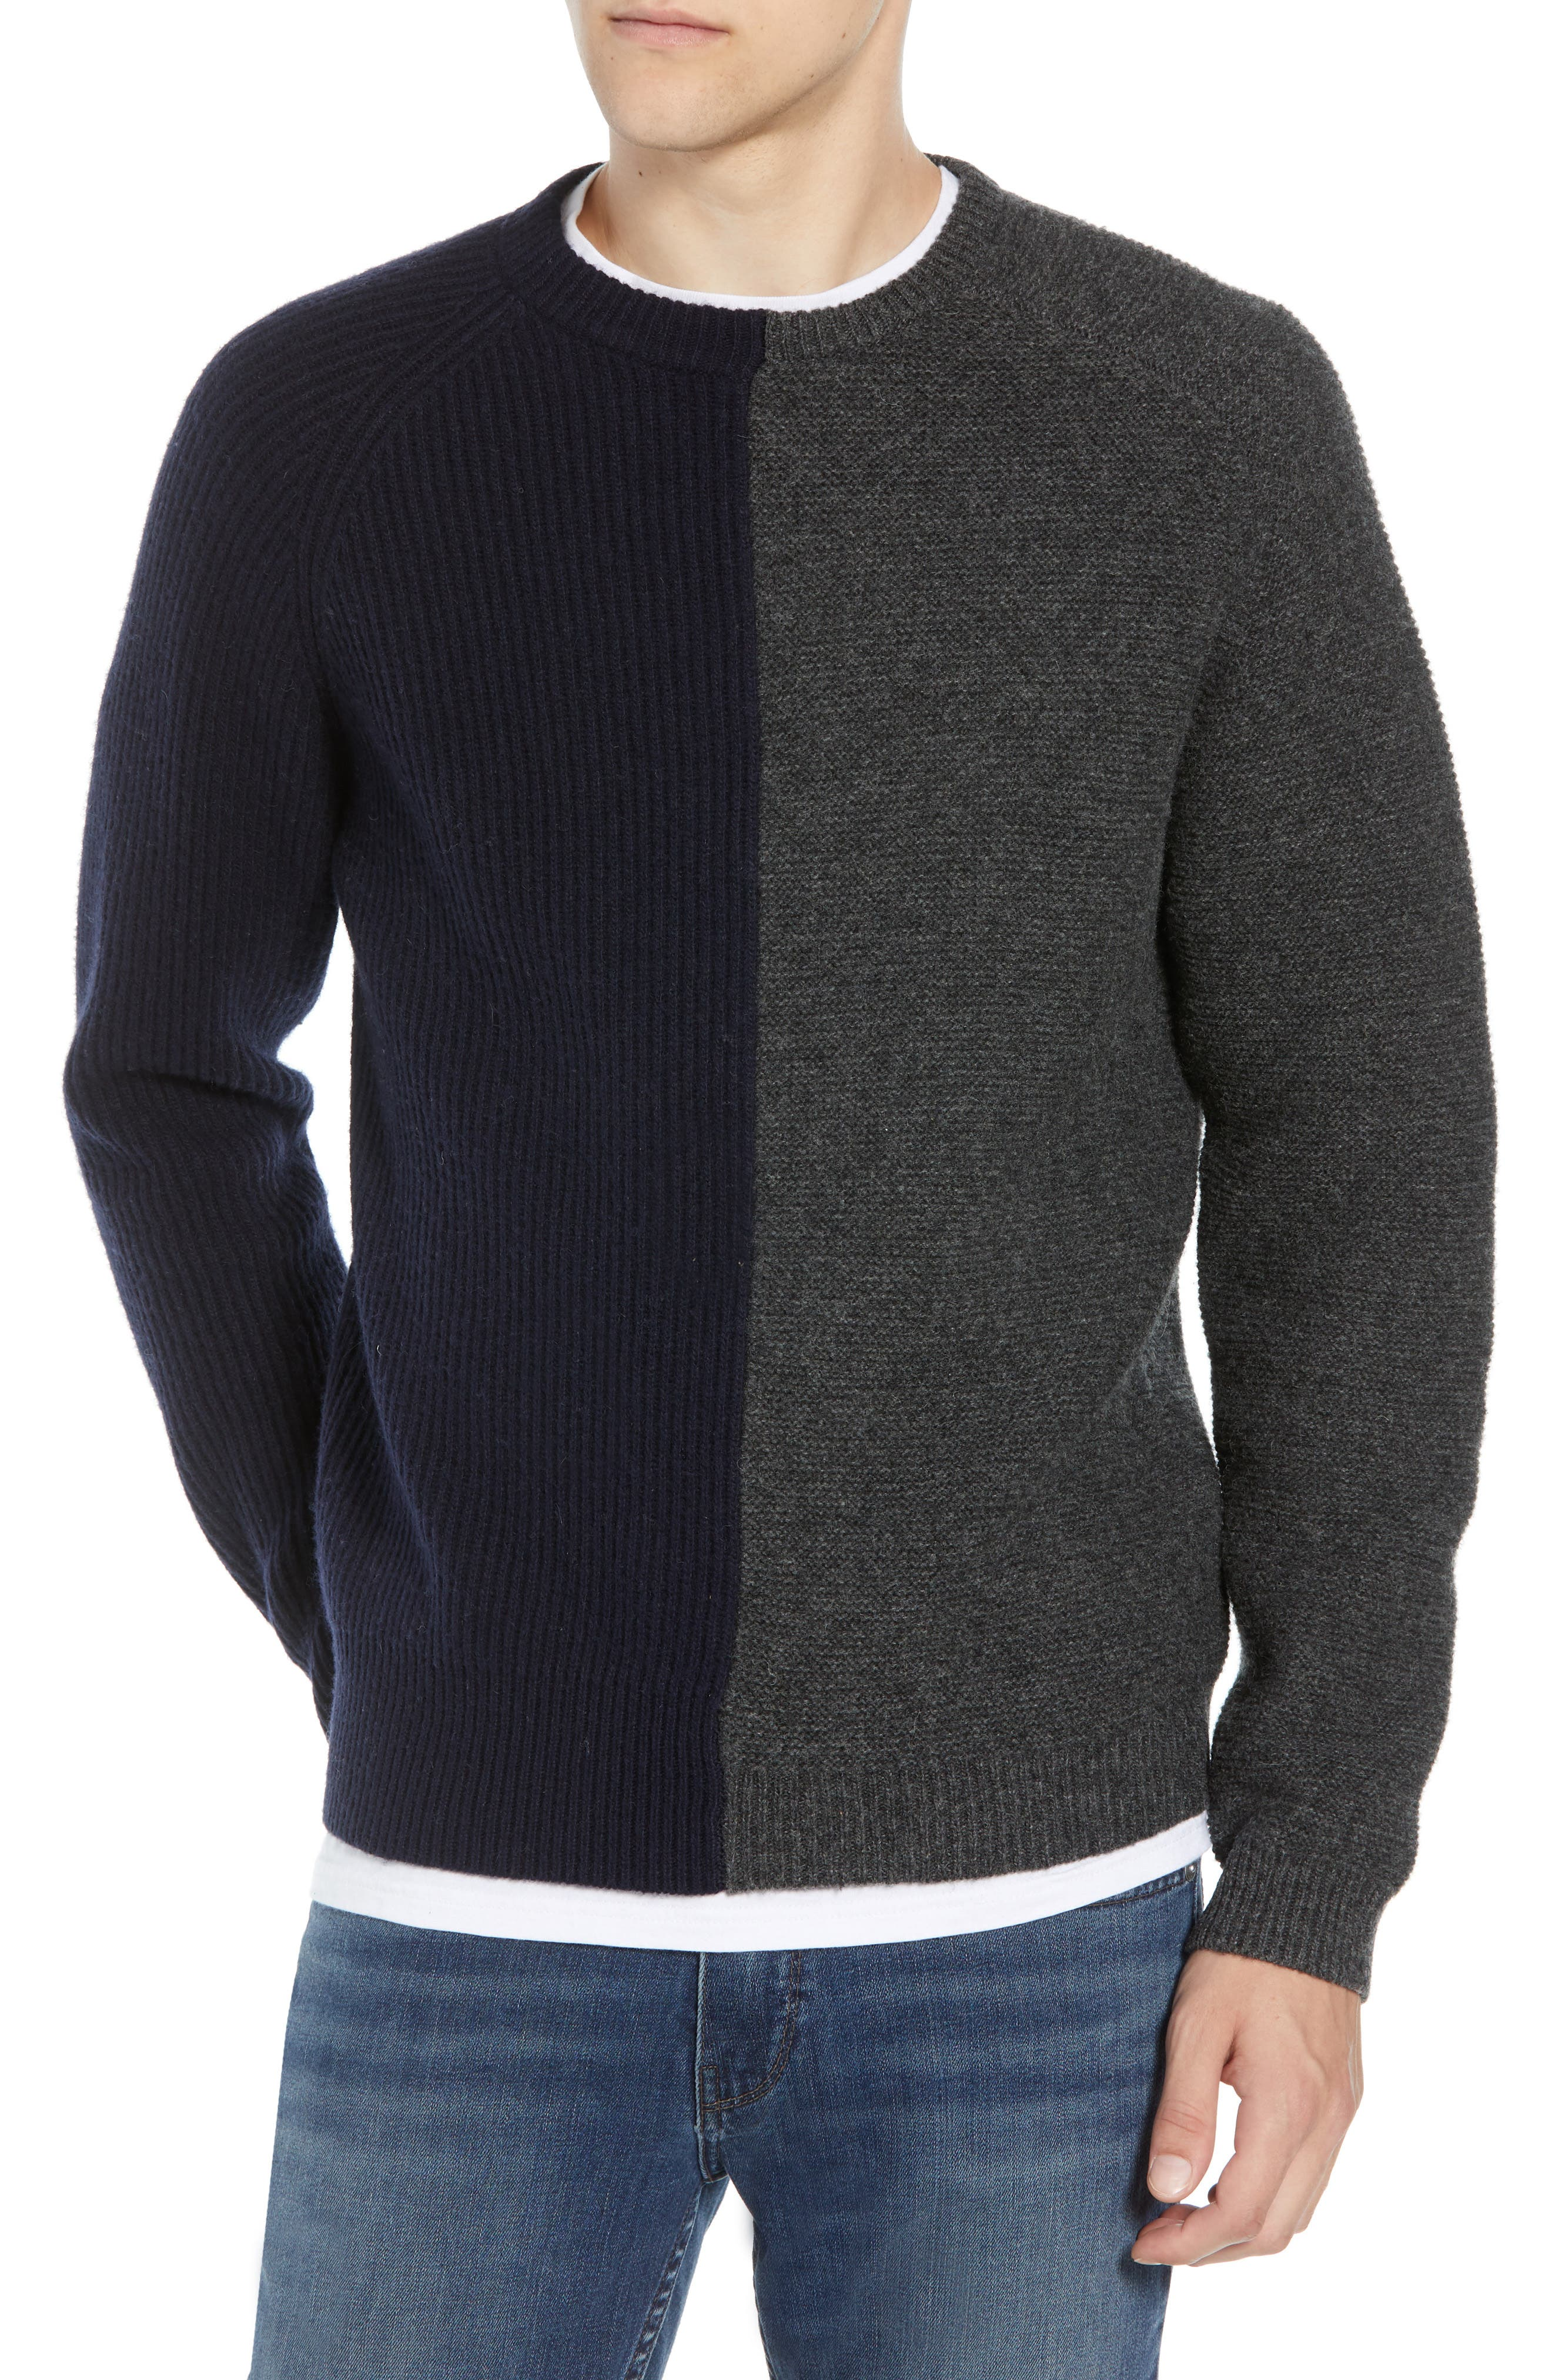 Mixed Texture Wool Blend Sweater,                         Main,                         color, UTILITY BLUE CHARCOAL MELANGE